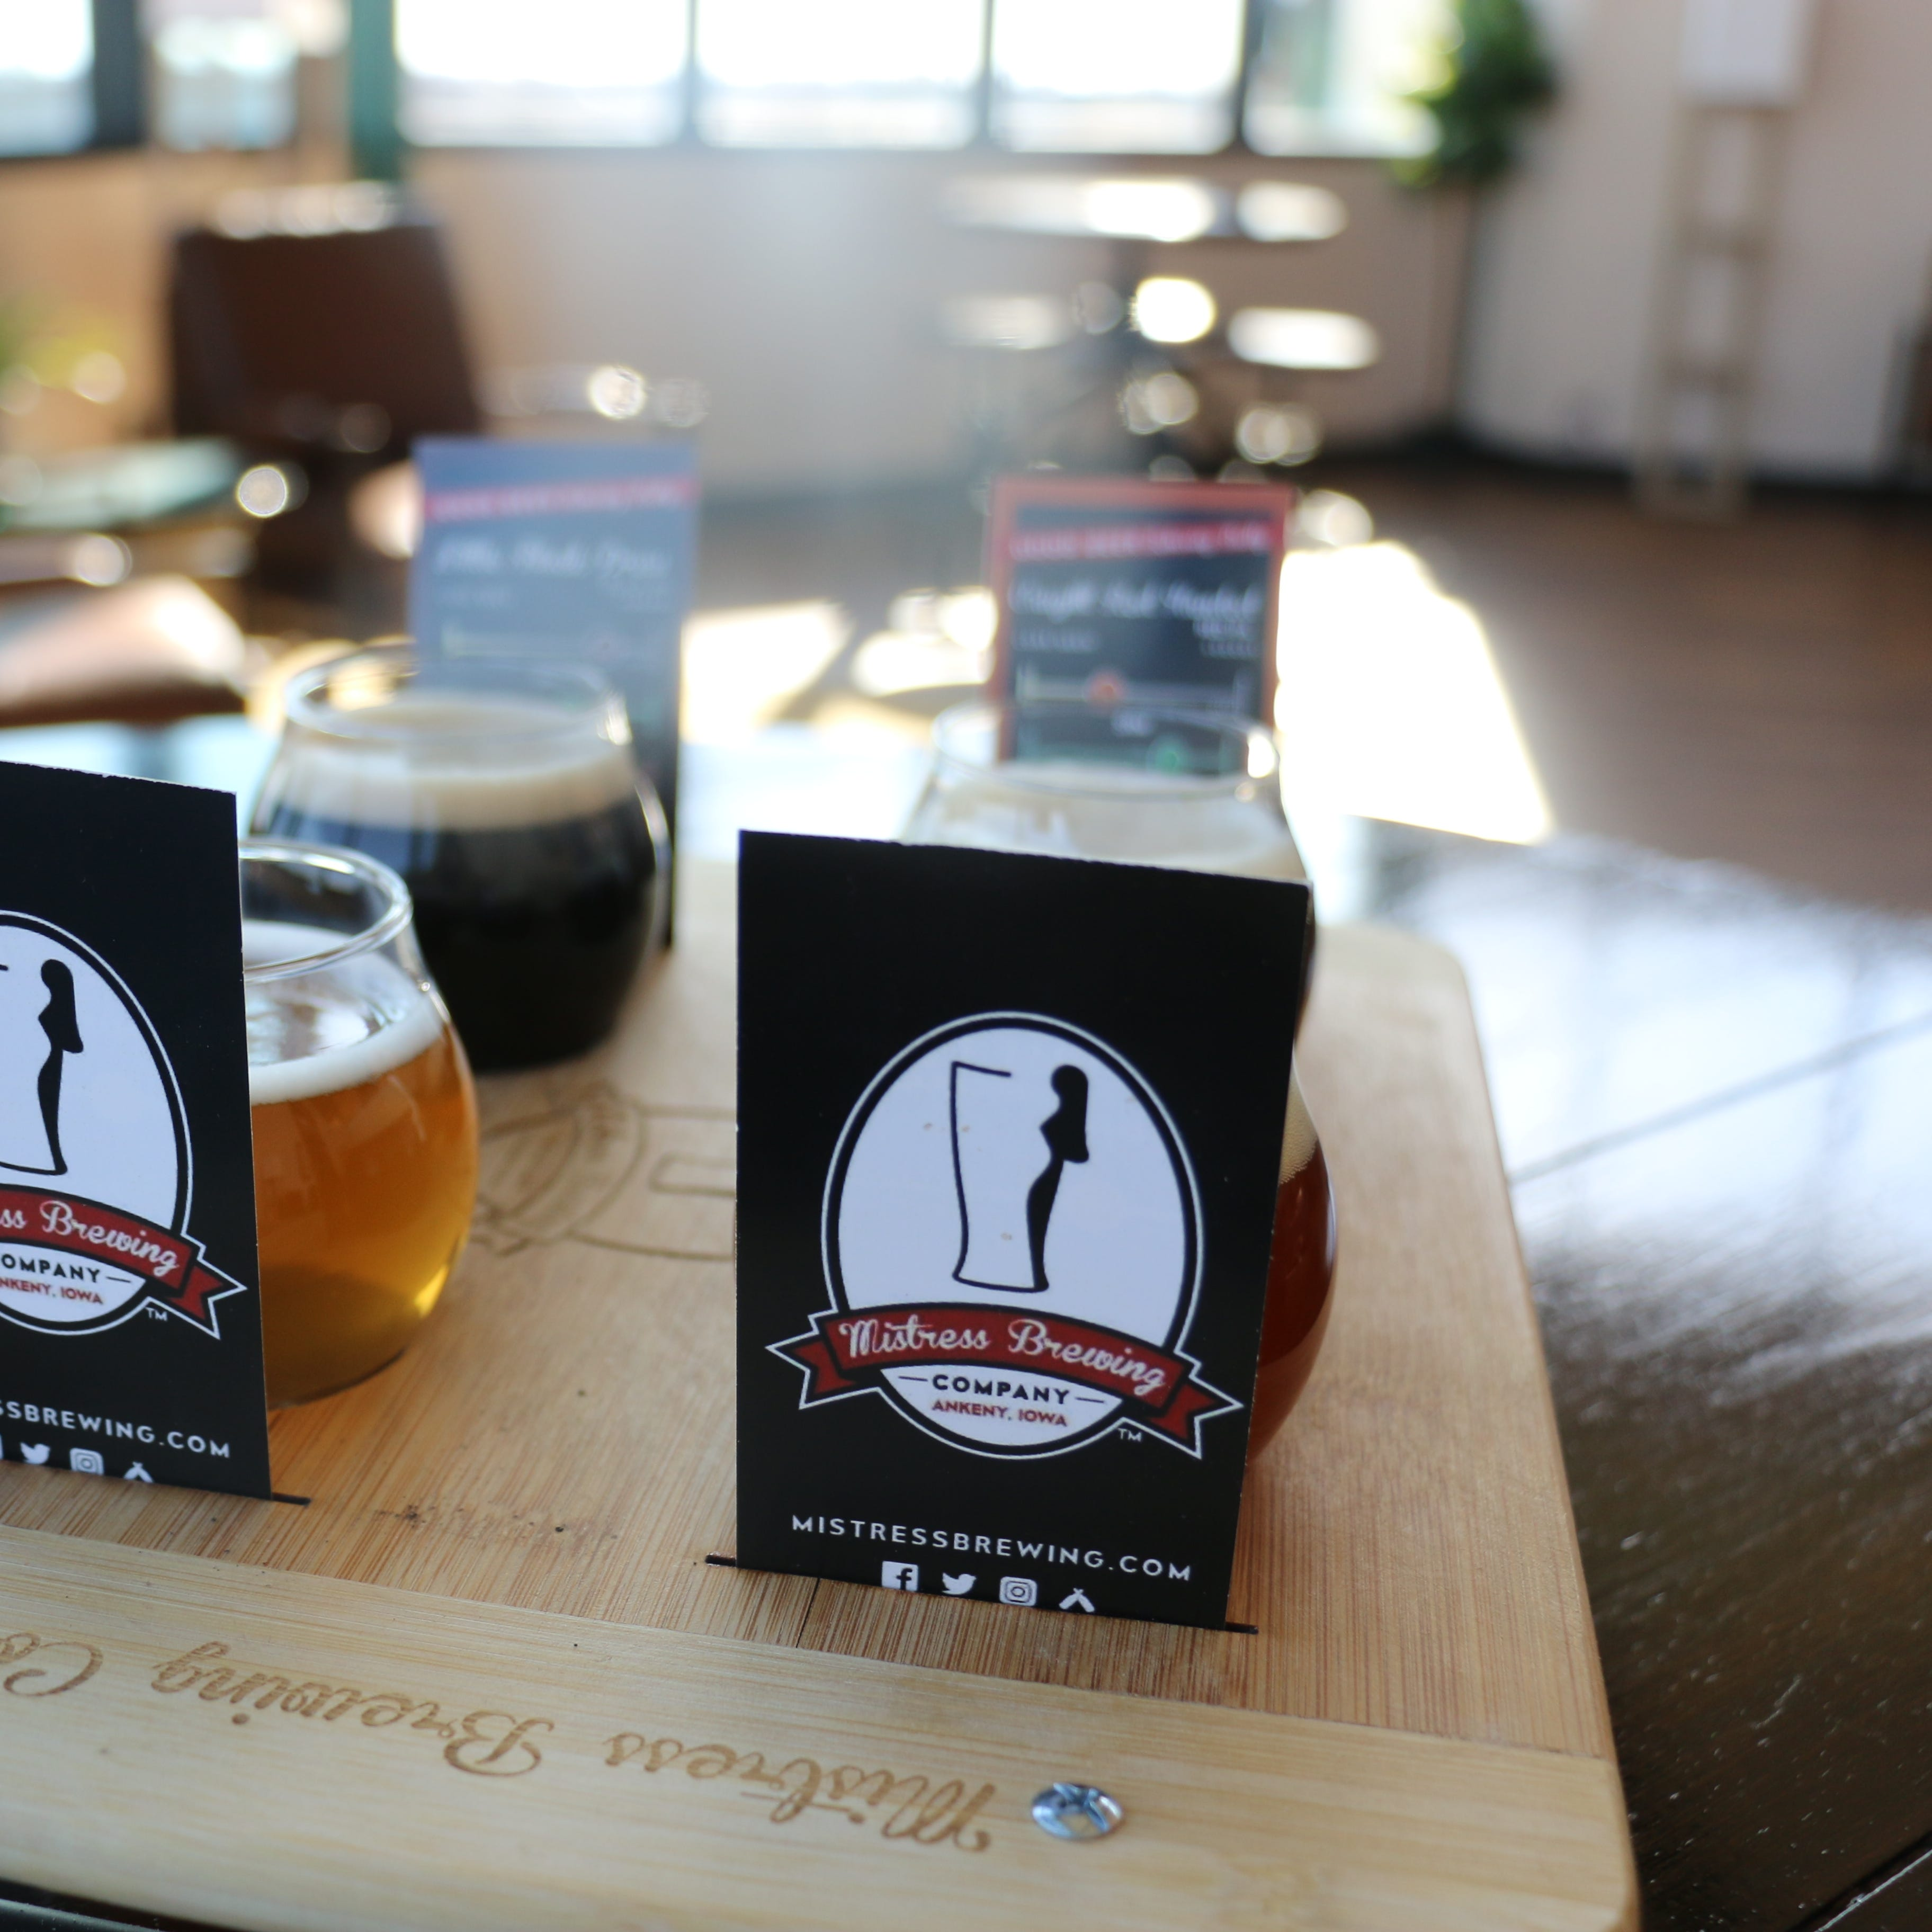 Take a look inside Ankeny's newest craft beer taproom: Mistress Brewing